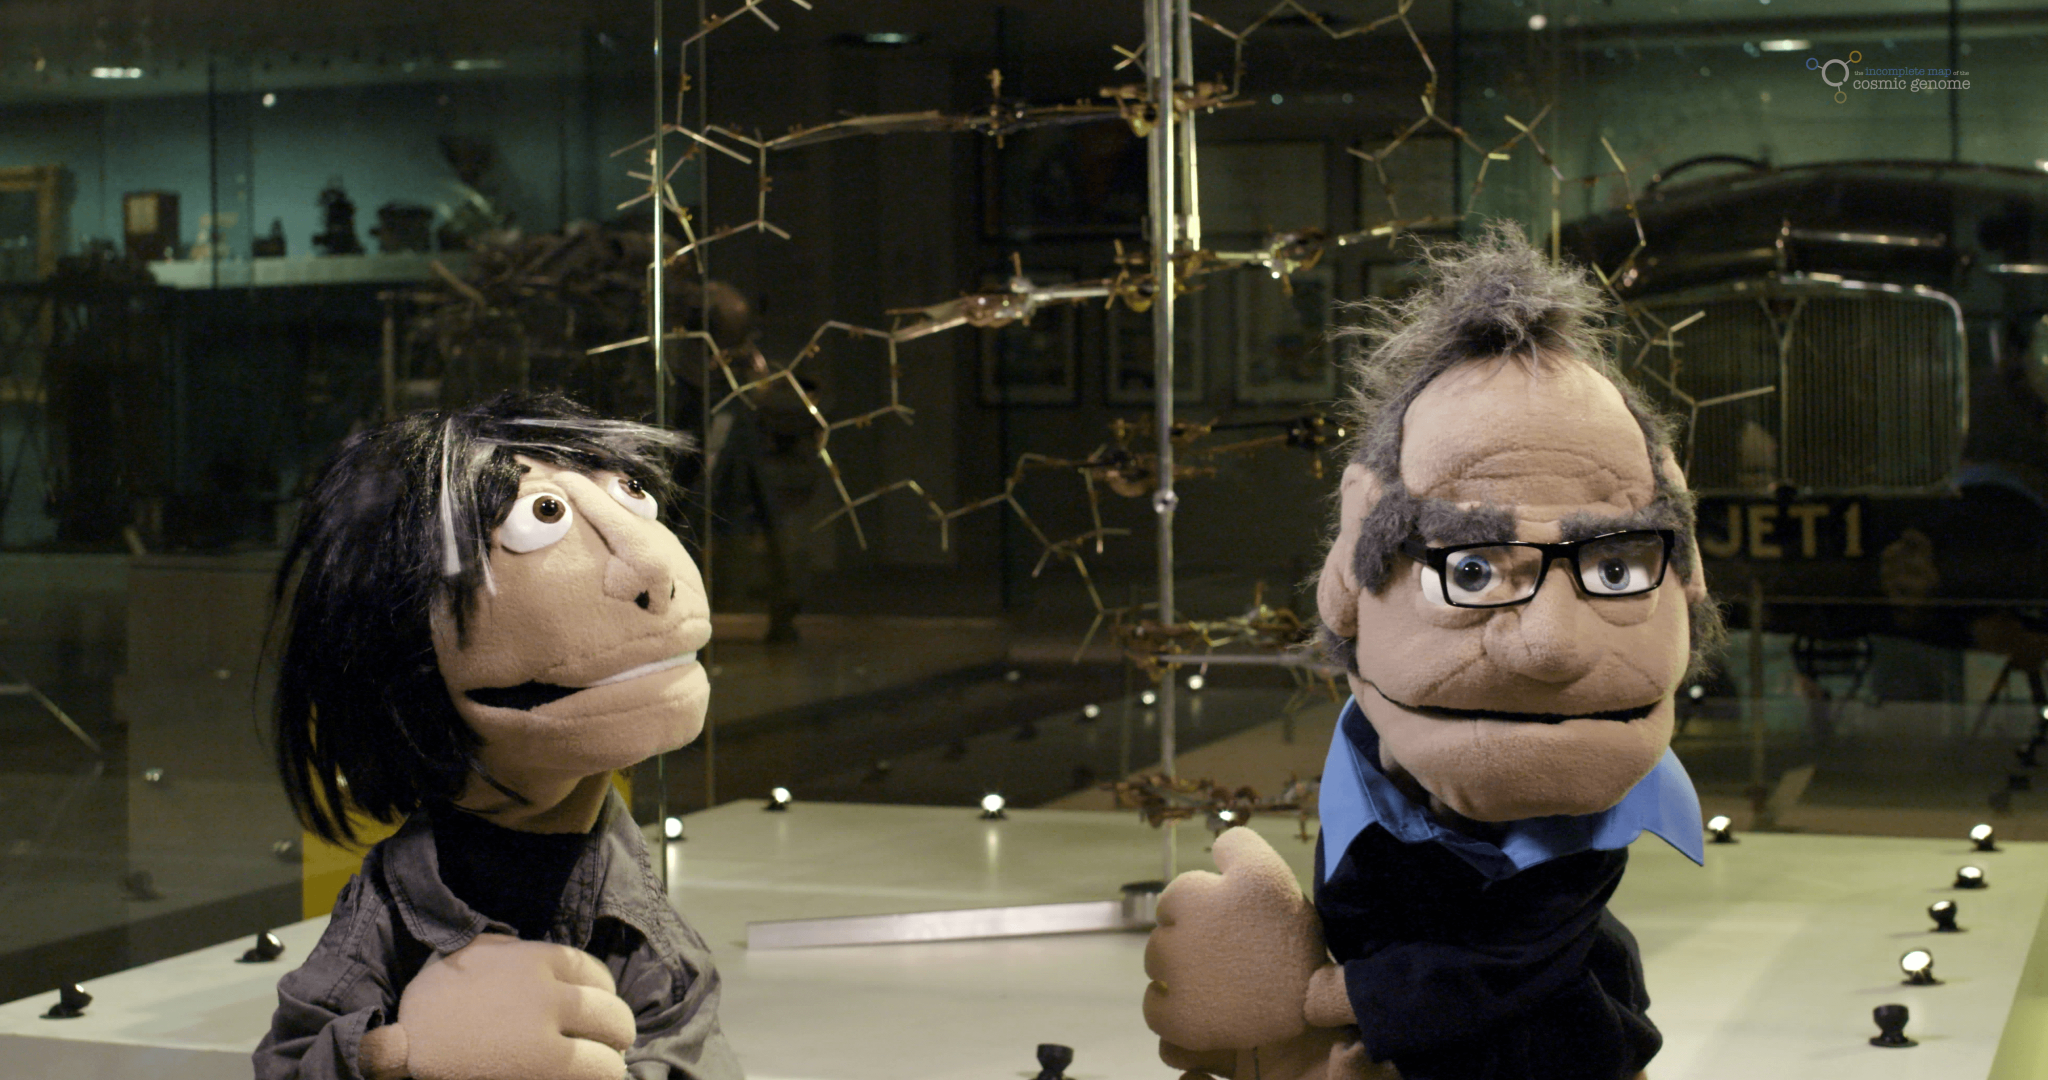 The Quest For Wonder puppets of Brian Cox and Robin Ince